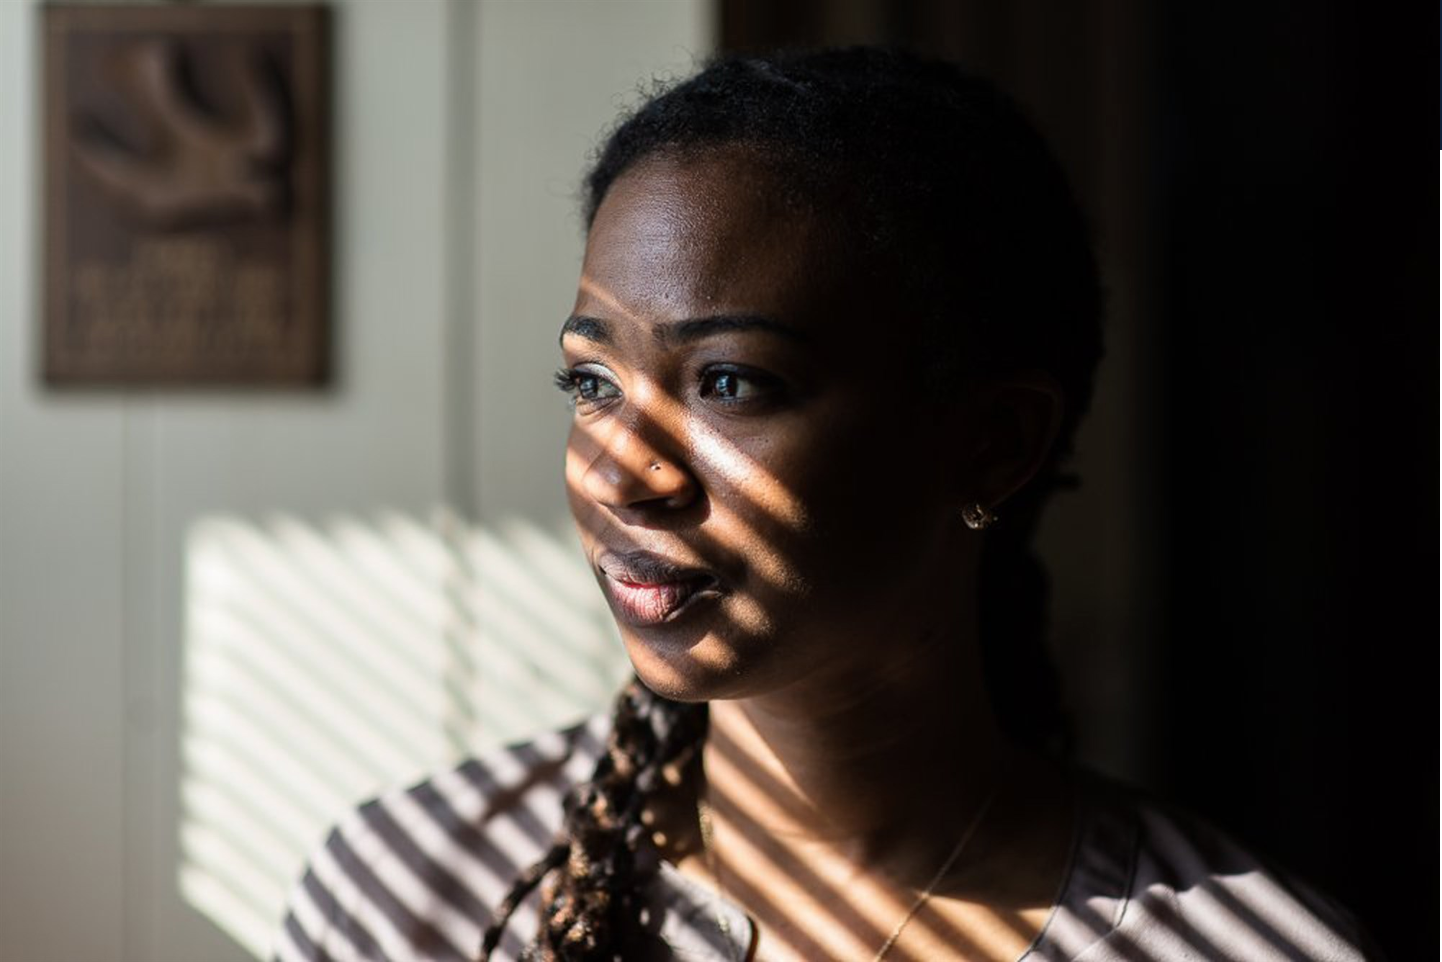 Black women are three to four times more likely than white women to die of pregnancy-related causes. Doctors are taking a new approach to the crisis. Photo of Alia McCants in her home in White Plains, New York